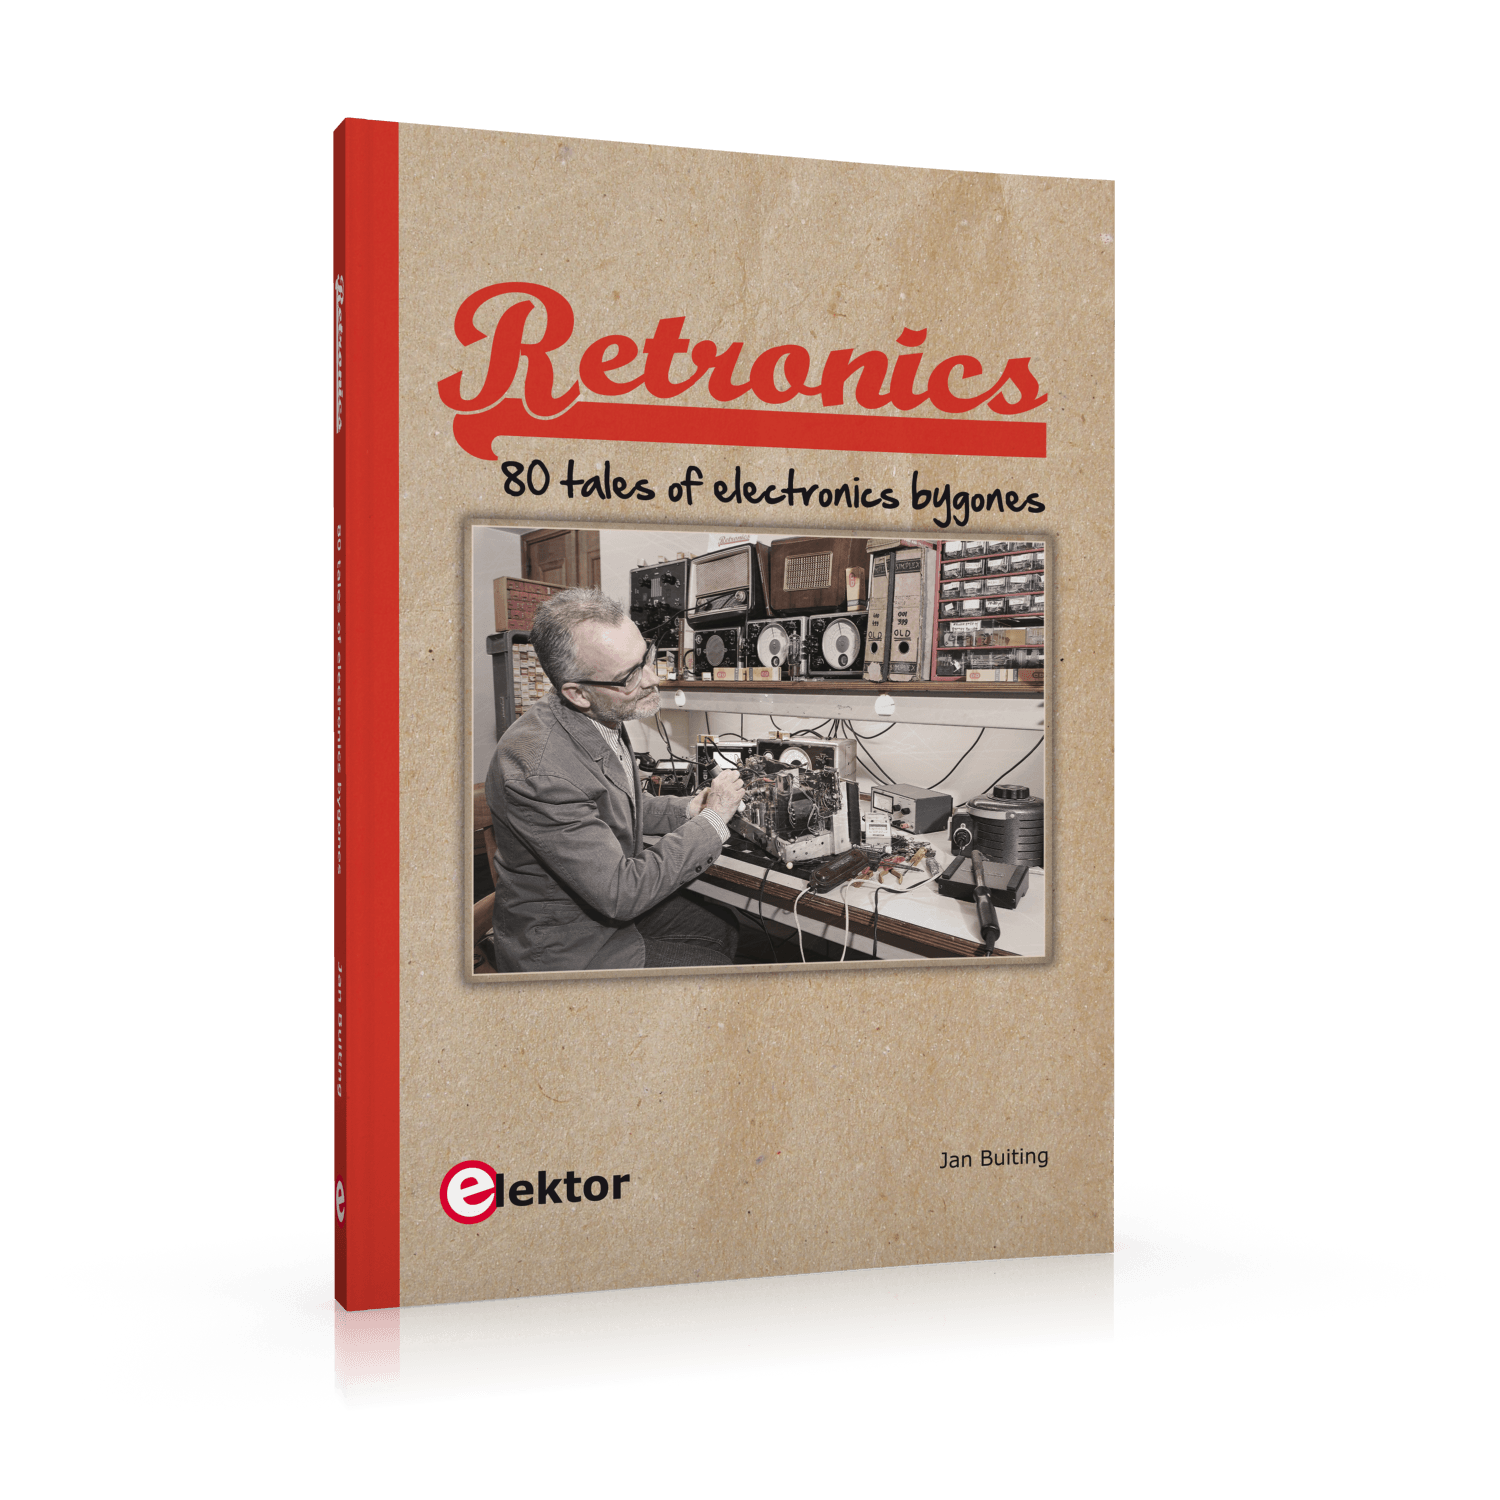 Retronics - 80 Tales of electronics bygones